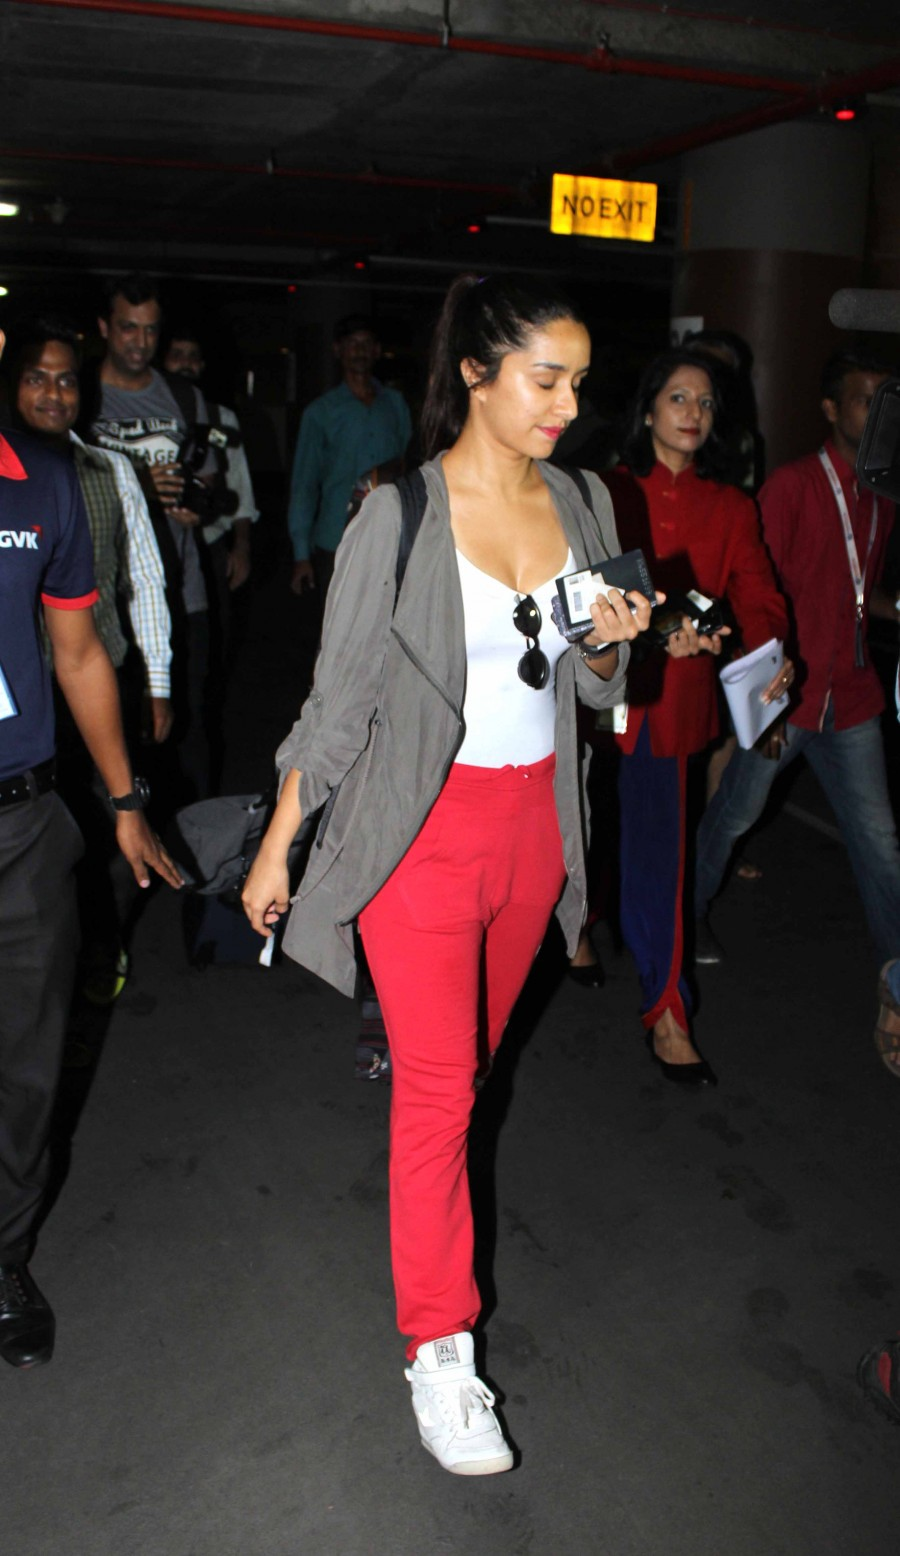 Shradha Kapoor,Katrina Kaif,Sanjay Dutt,Shradha Kapoor spotted at mumbai airport,Katrina Kaif spotted at mumbai airport,Sanjay Dutt spotted at mumbai airport,Celebs at airport